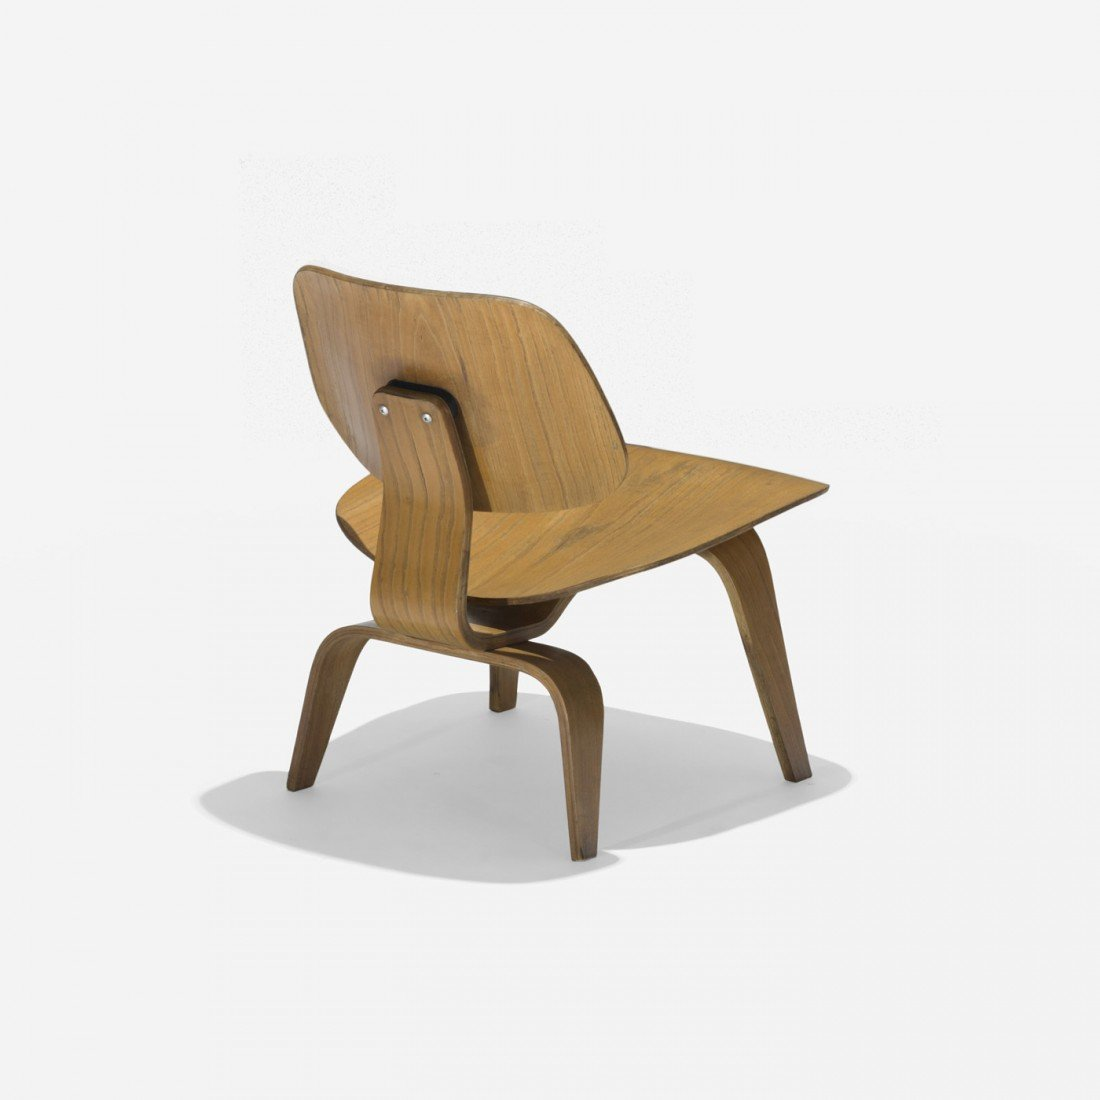 115: Charles and Ray Eames LCW